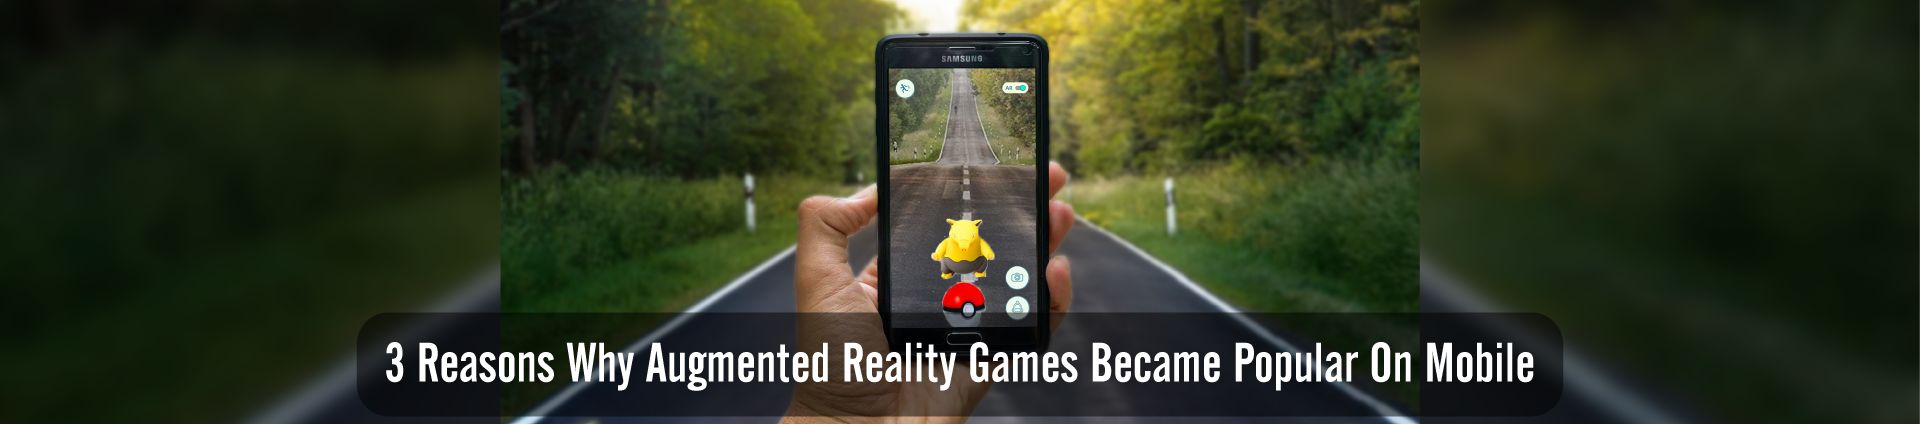 Popularity of Augmented Reality Games